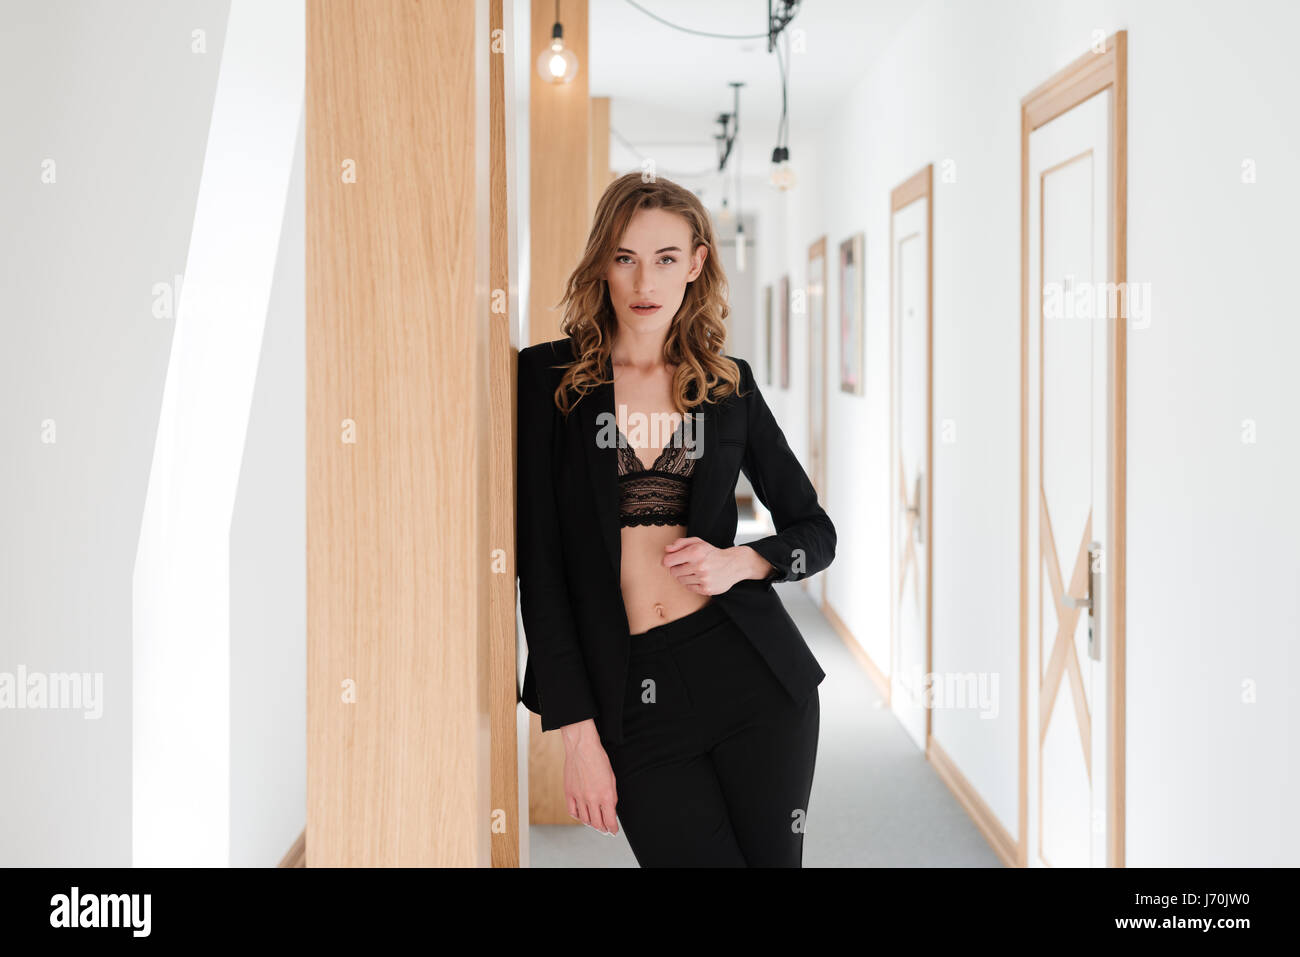 Pretty woman in suit and bra posing in apartmant while holding arm at hip and looking at the camera - Stock Image